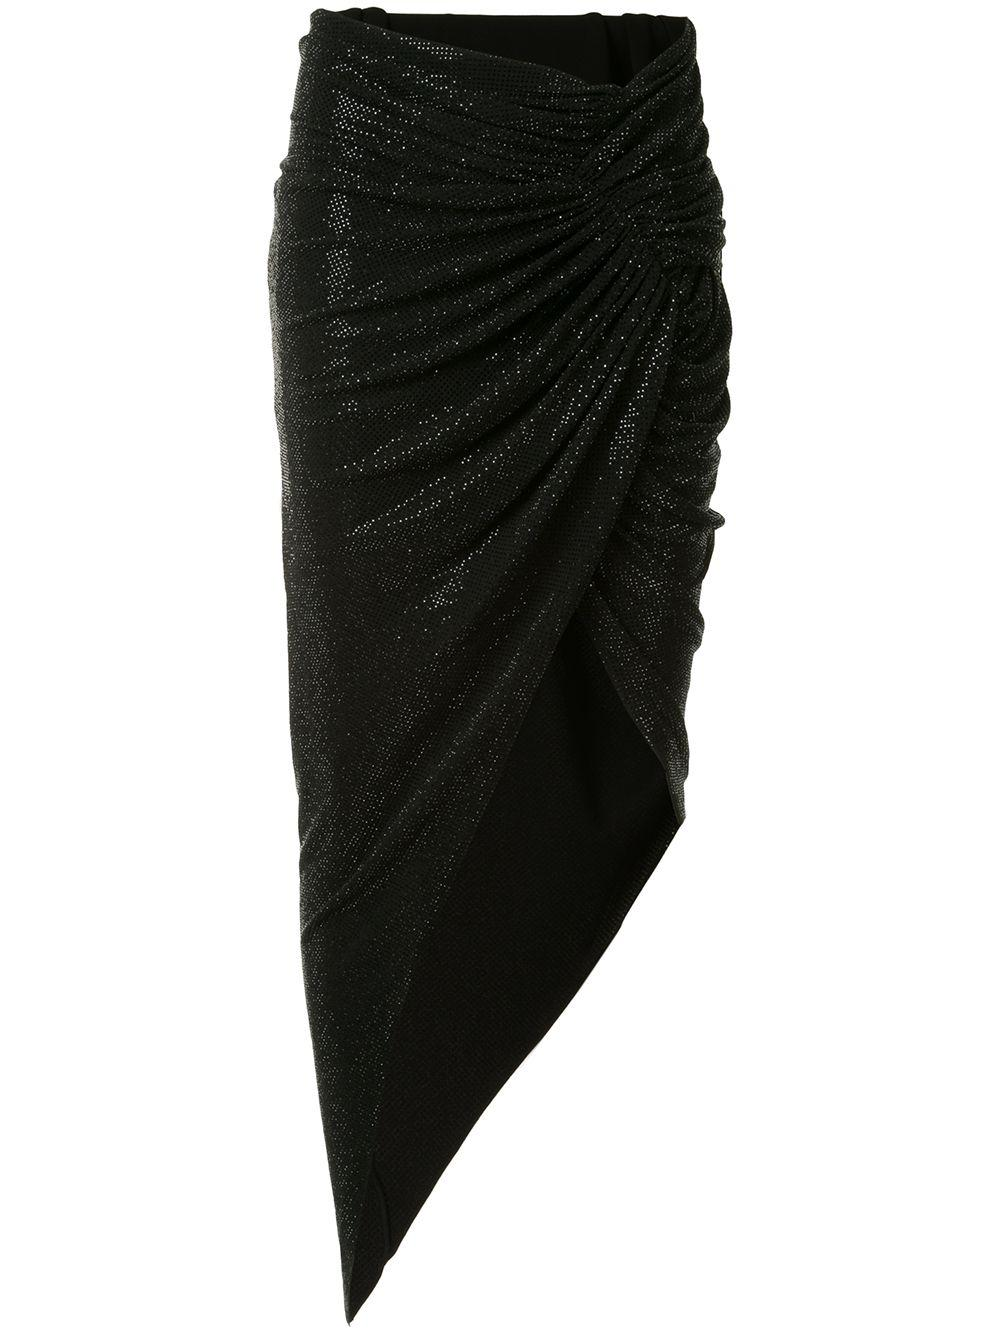 Microcrystal Jersey Skirt